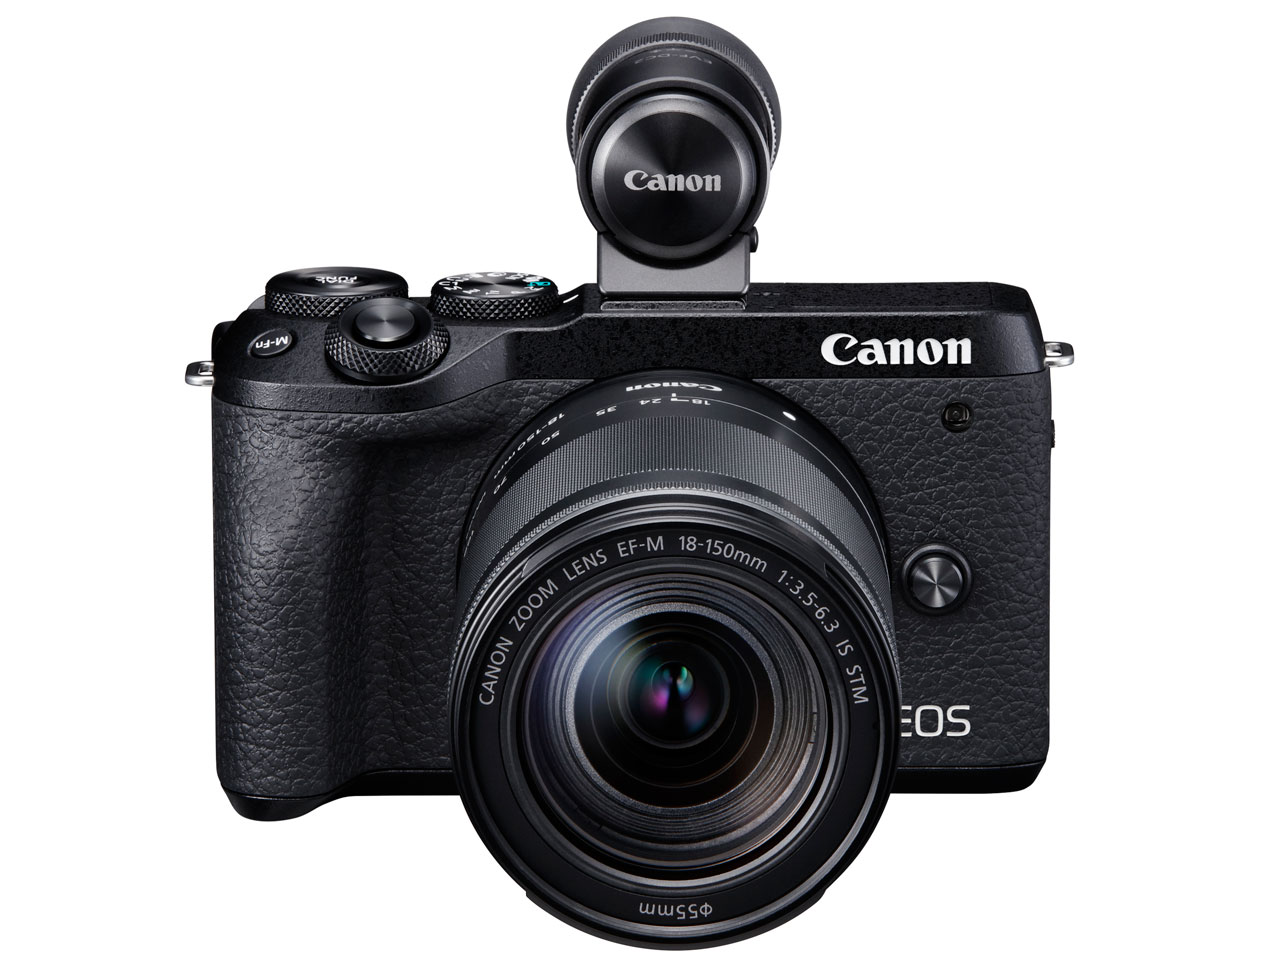 Canon EOS M6 Mark II EF-M18-150 IS STM レンズEVFキット [ブラック]【お取り寄せ商品(3週間~4週間程度での入荷、発送)】